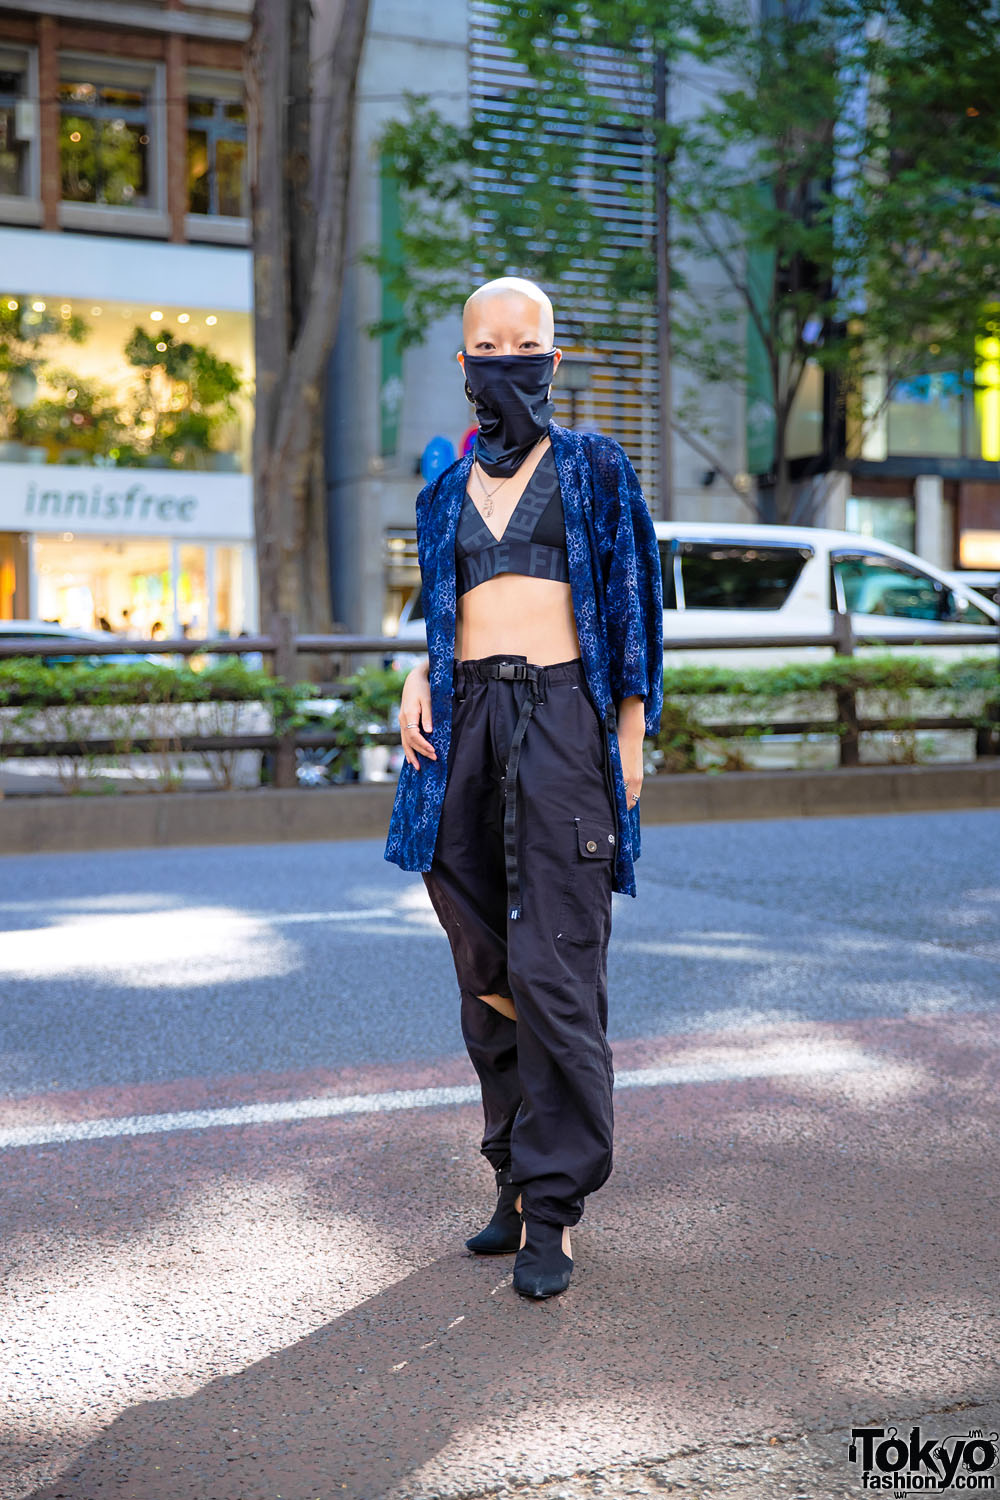 Tokyo Kimono Street Style by Shaved Head Female Japanese Model w/ Face Mask, Honwaka, Parachute Pants & Cutout Booties